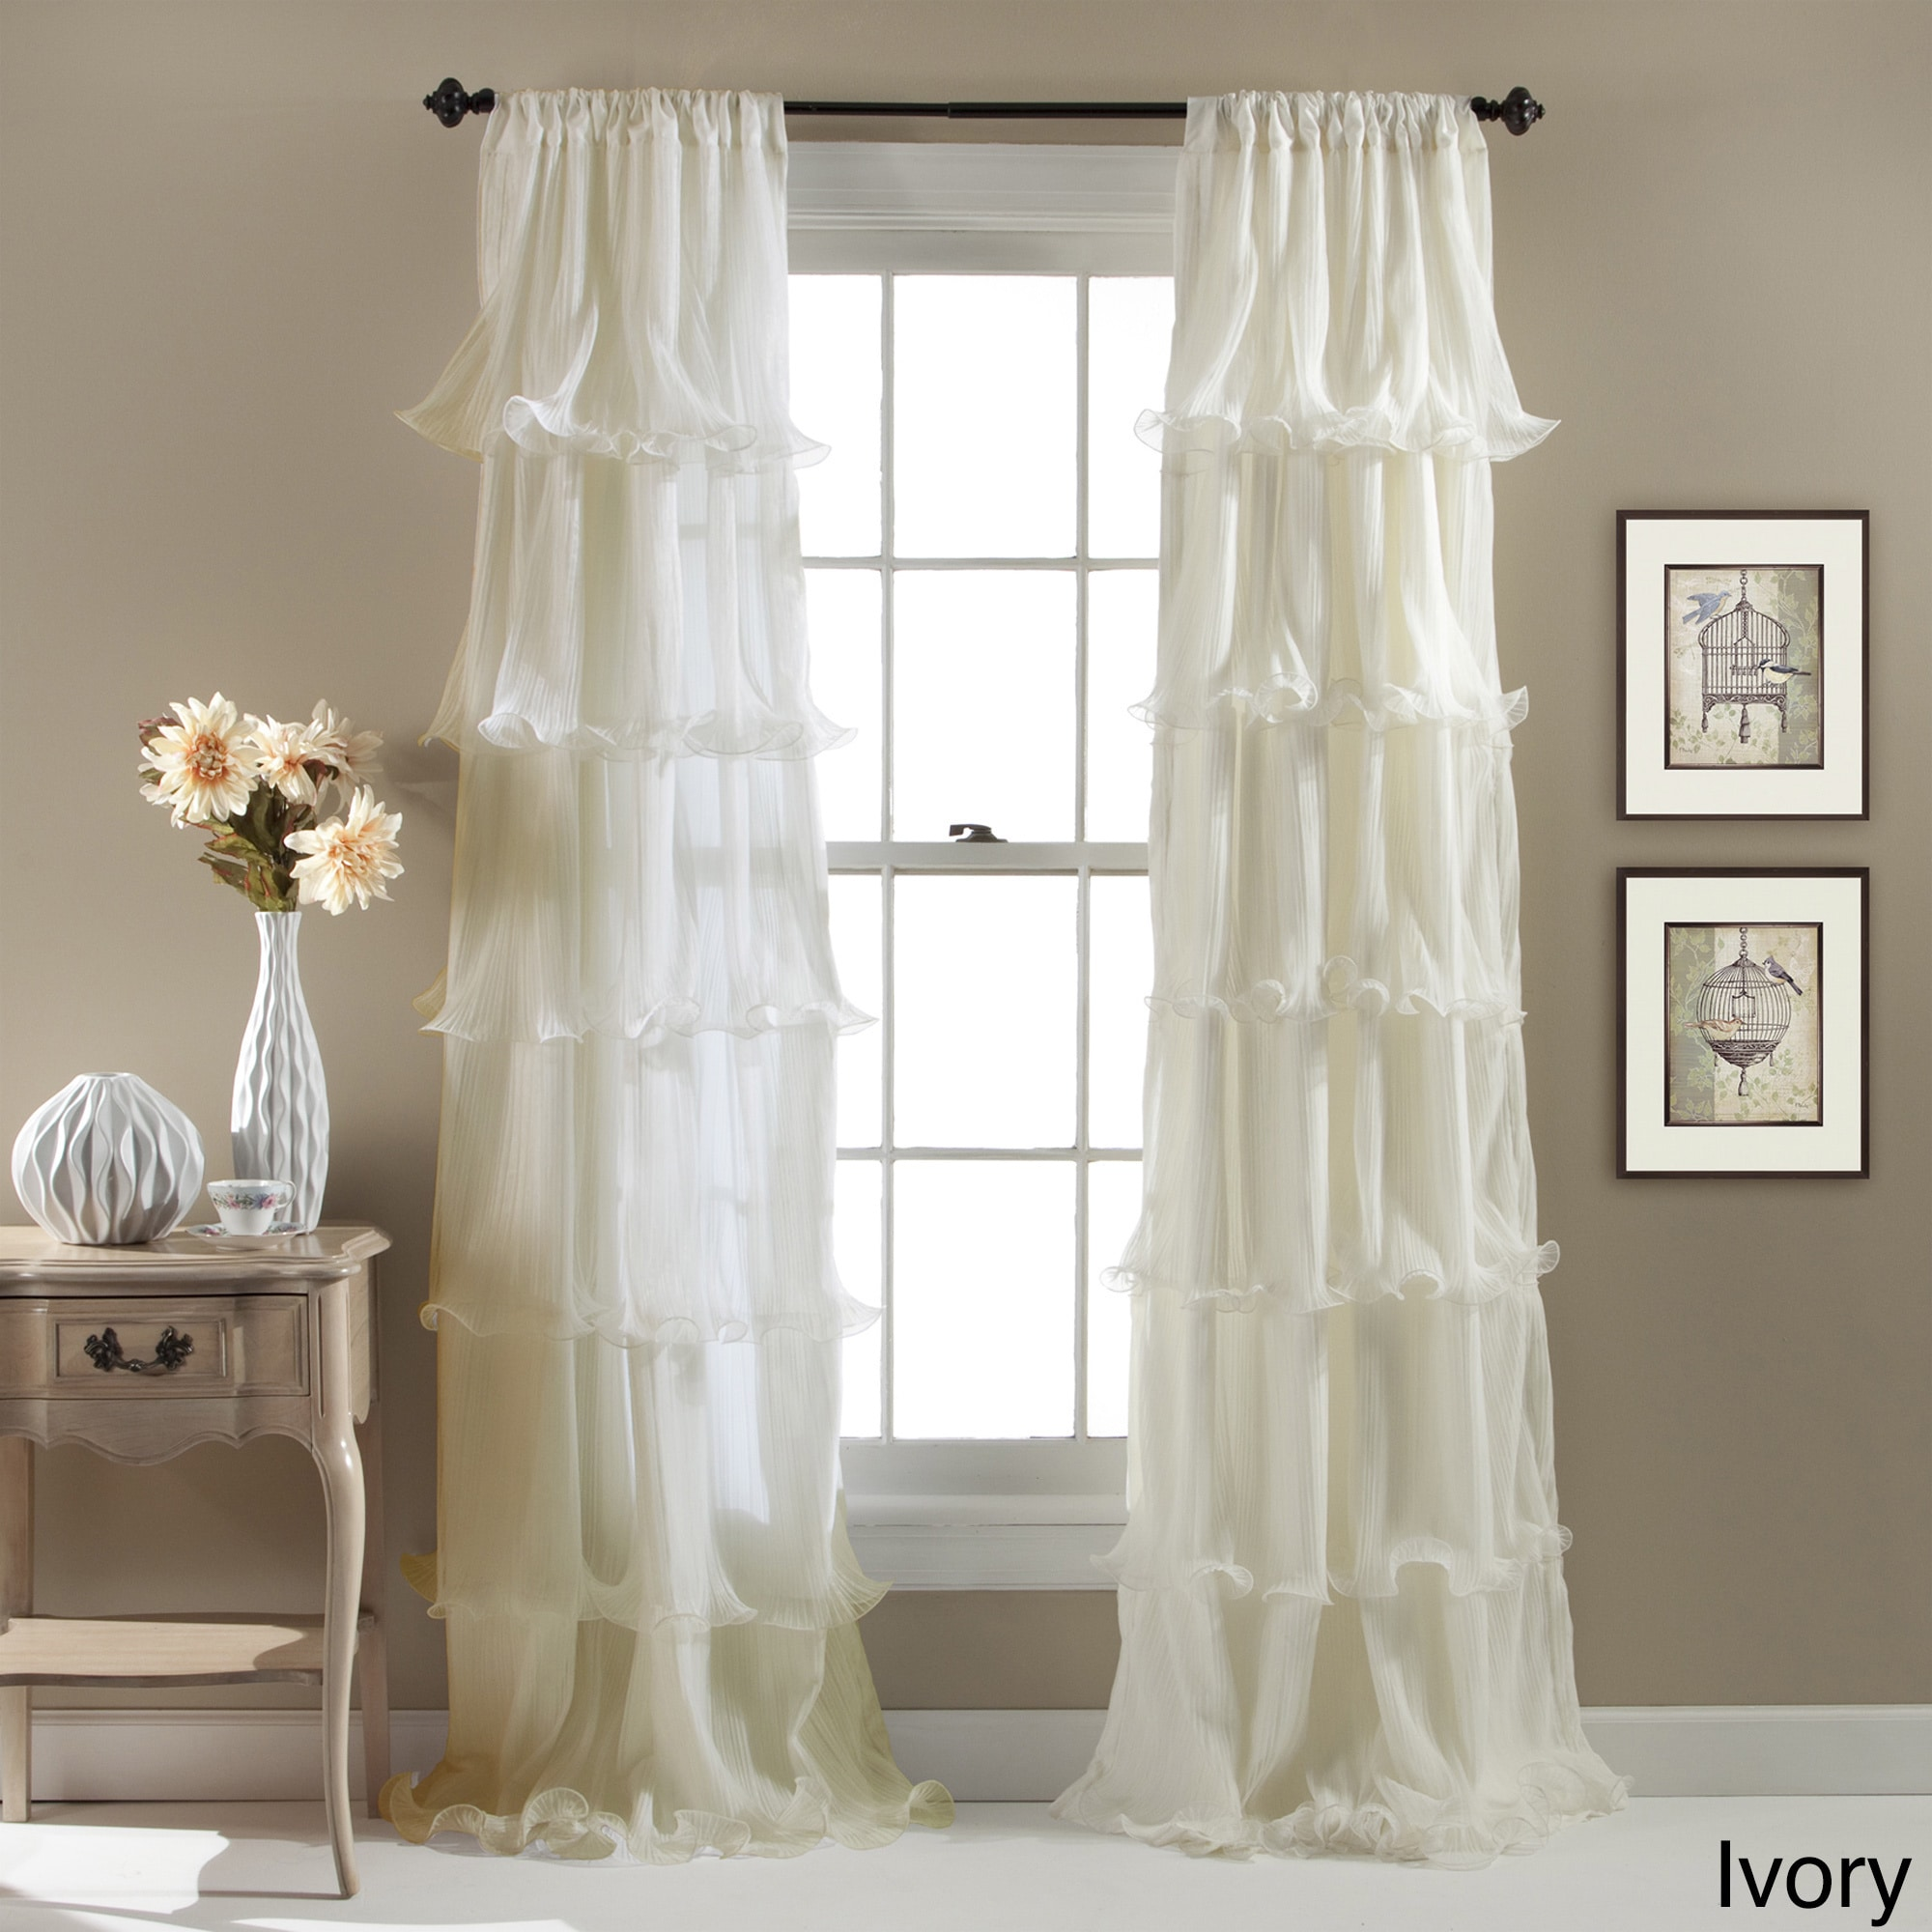 on shipping curtains lush garden panel nerina over product free x orders ruffle curtain home decor overstock ruffled